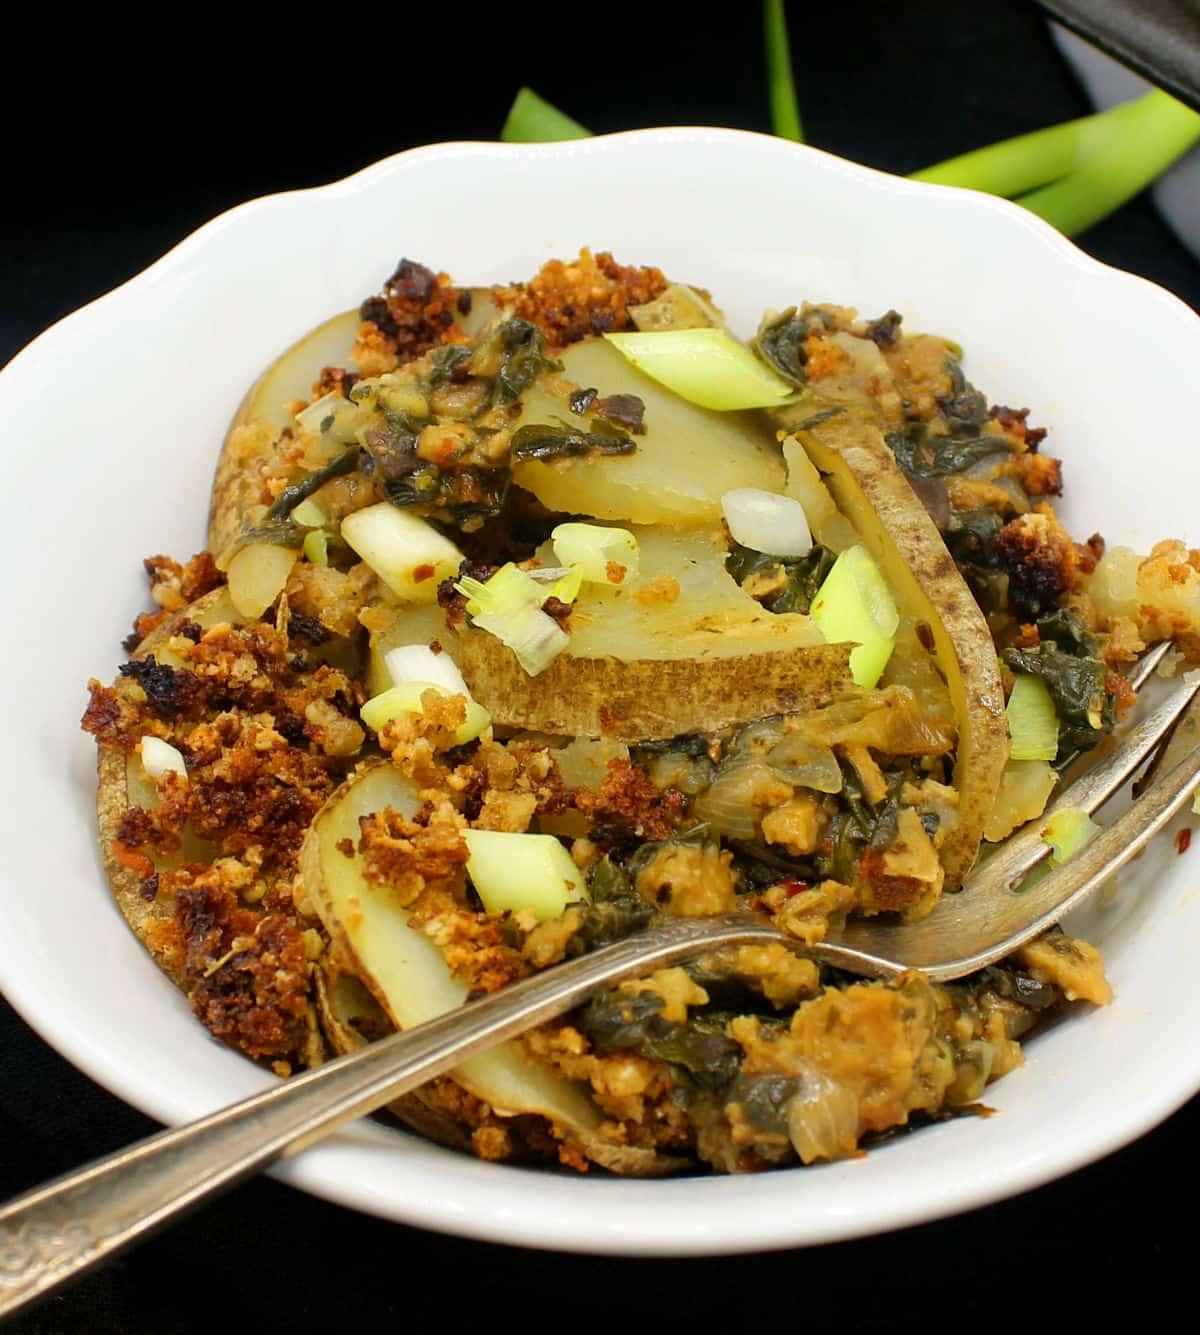 A white ceramic bowl with a serving of vegan spinach potato casserole with sausage and a fork. Scallions are scattered on top and on the side.